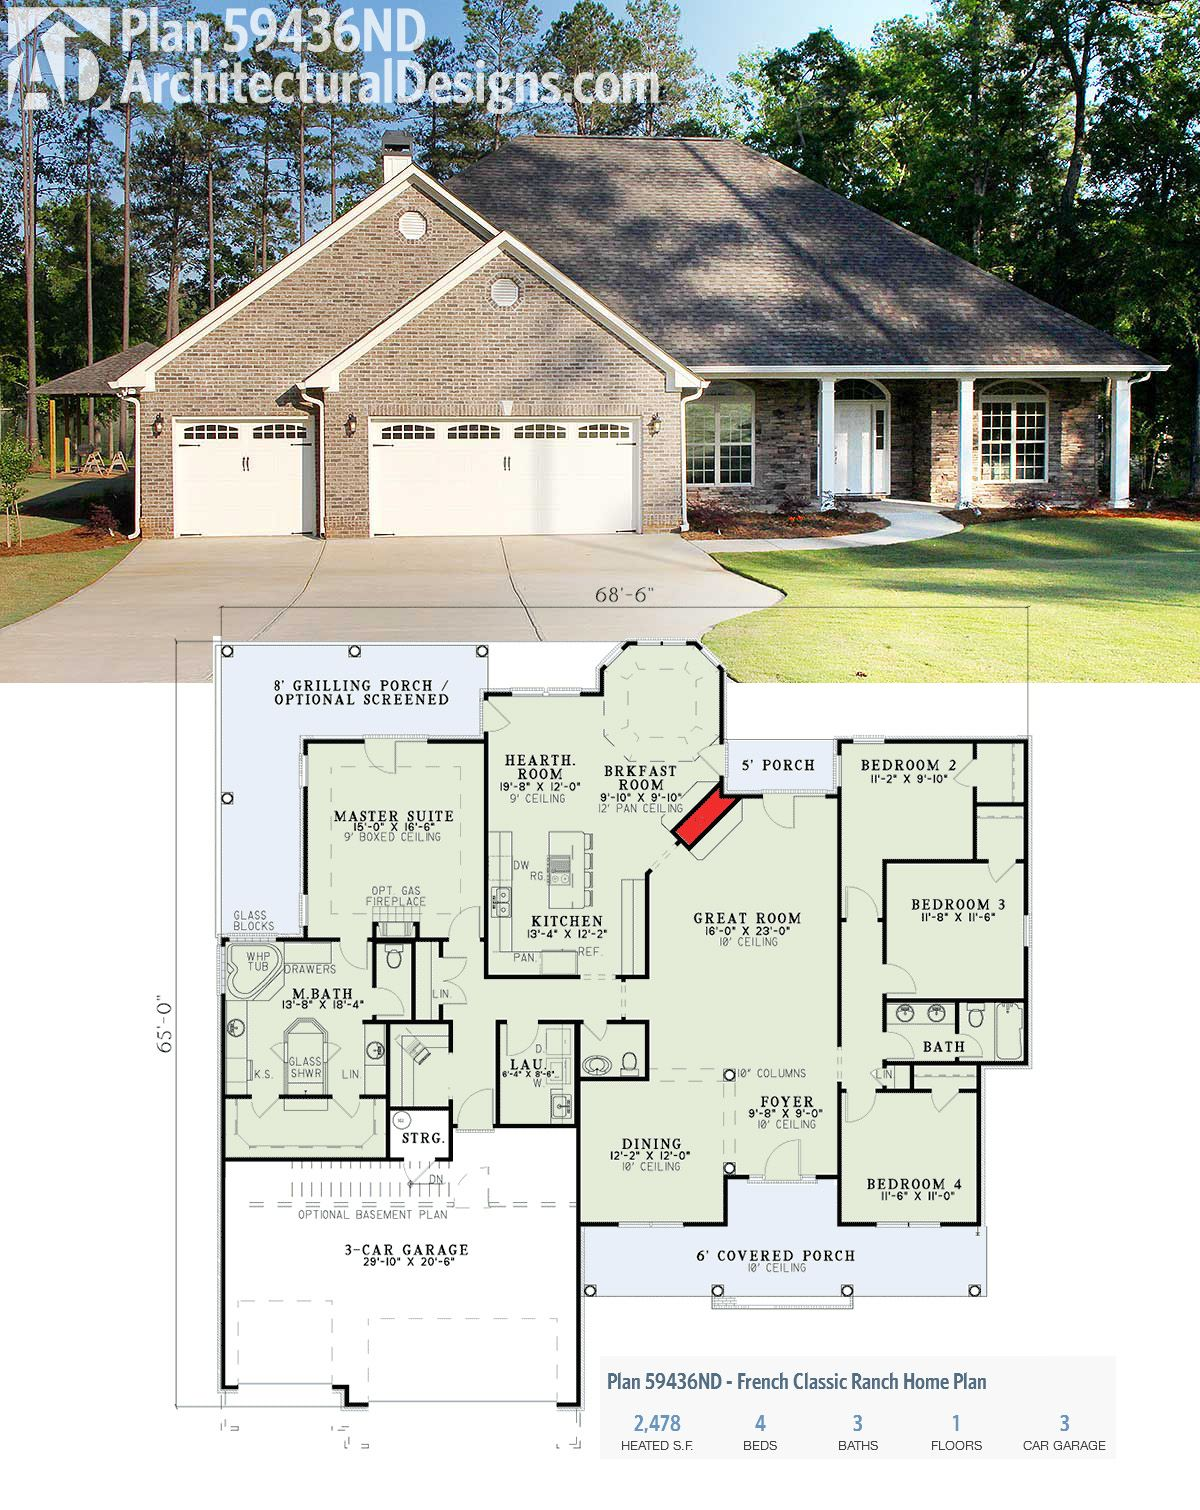 Plan 59436nd French Classic Ranch Home Plan Ranch House Plans House Plans Architectural Design House Plans